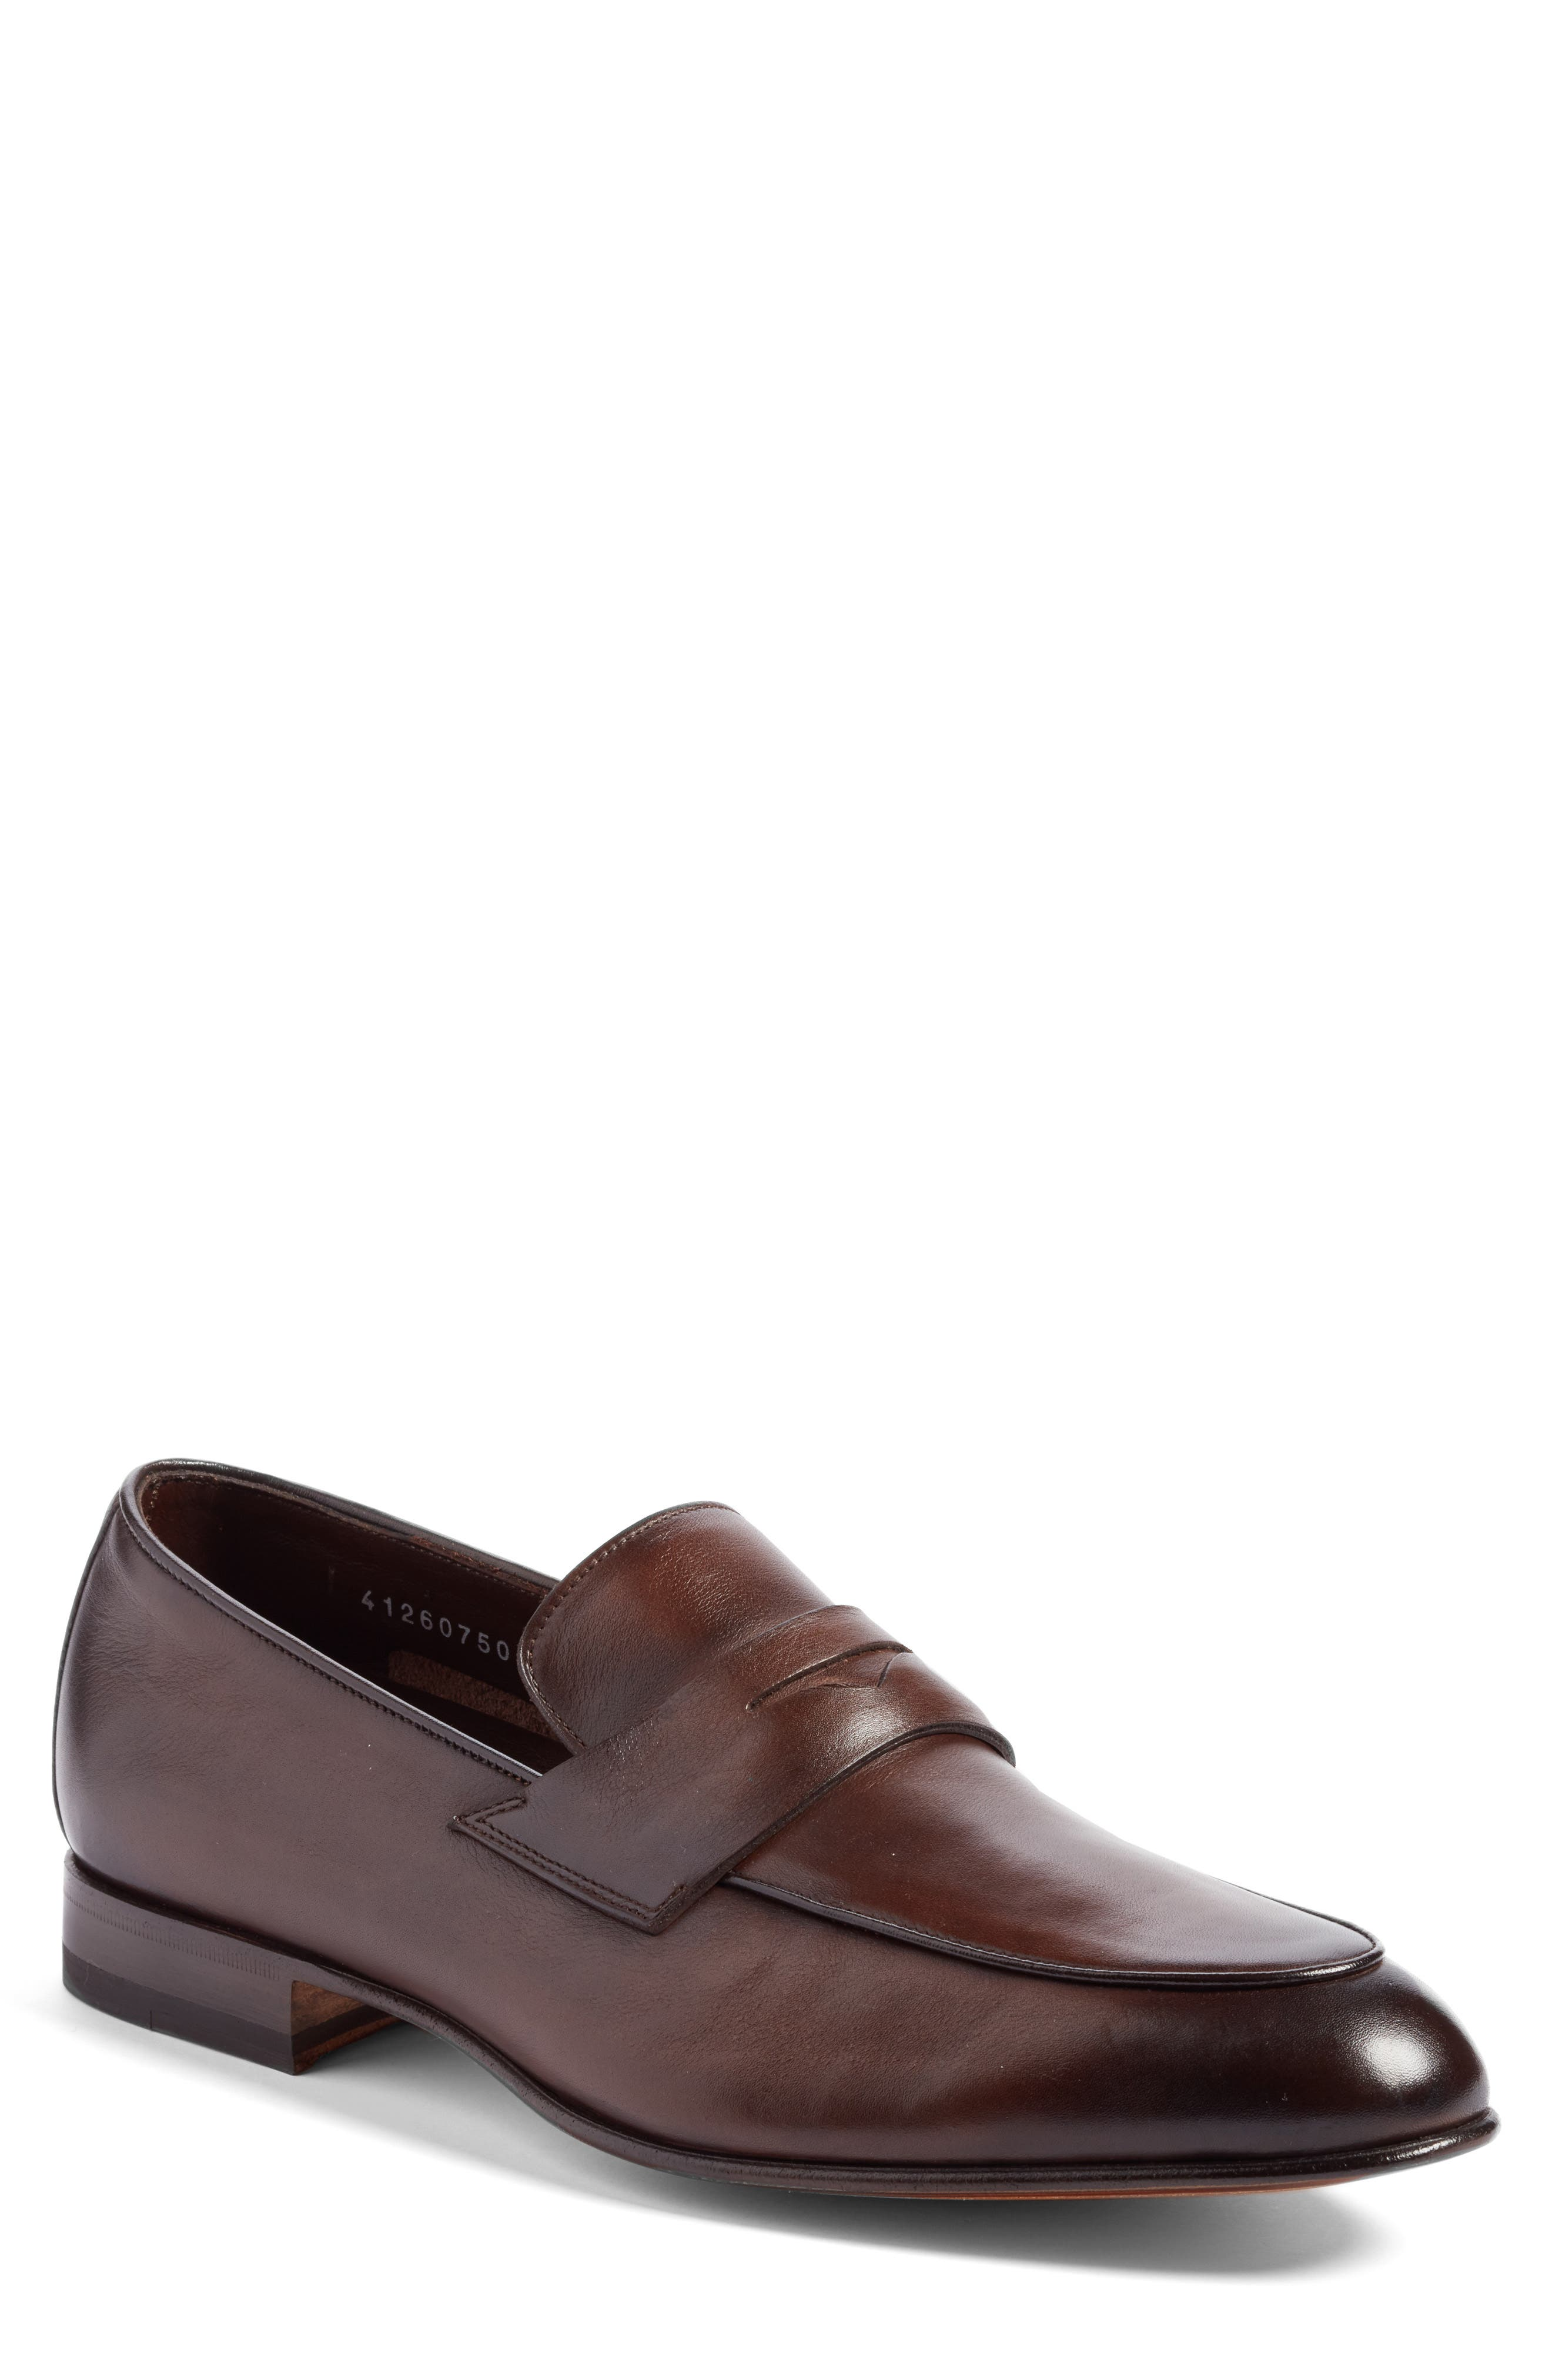 Fontaine Penny Loafer,                             Main thumbnail 1, color,                             209